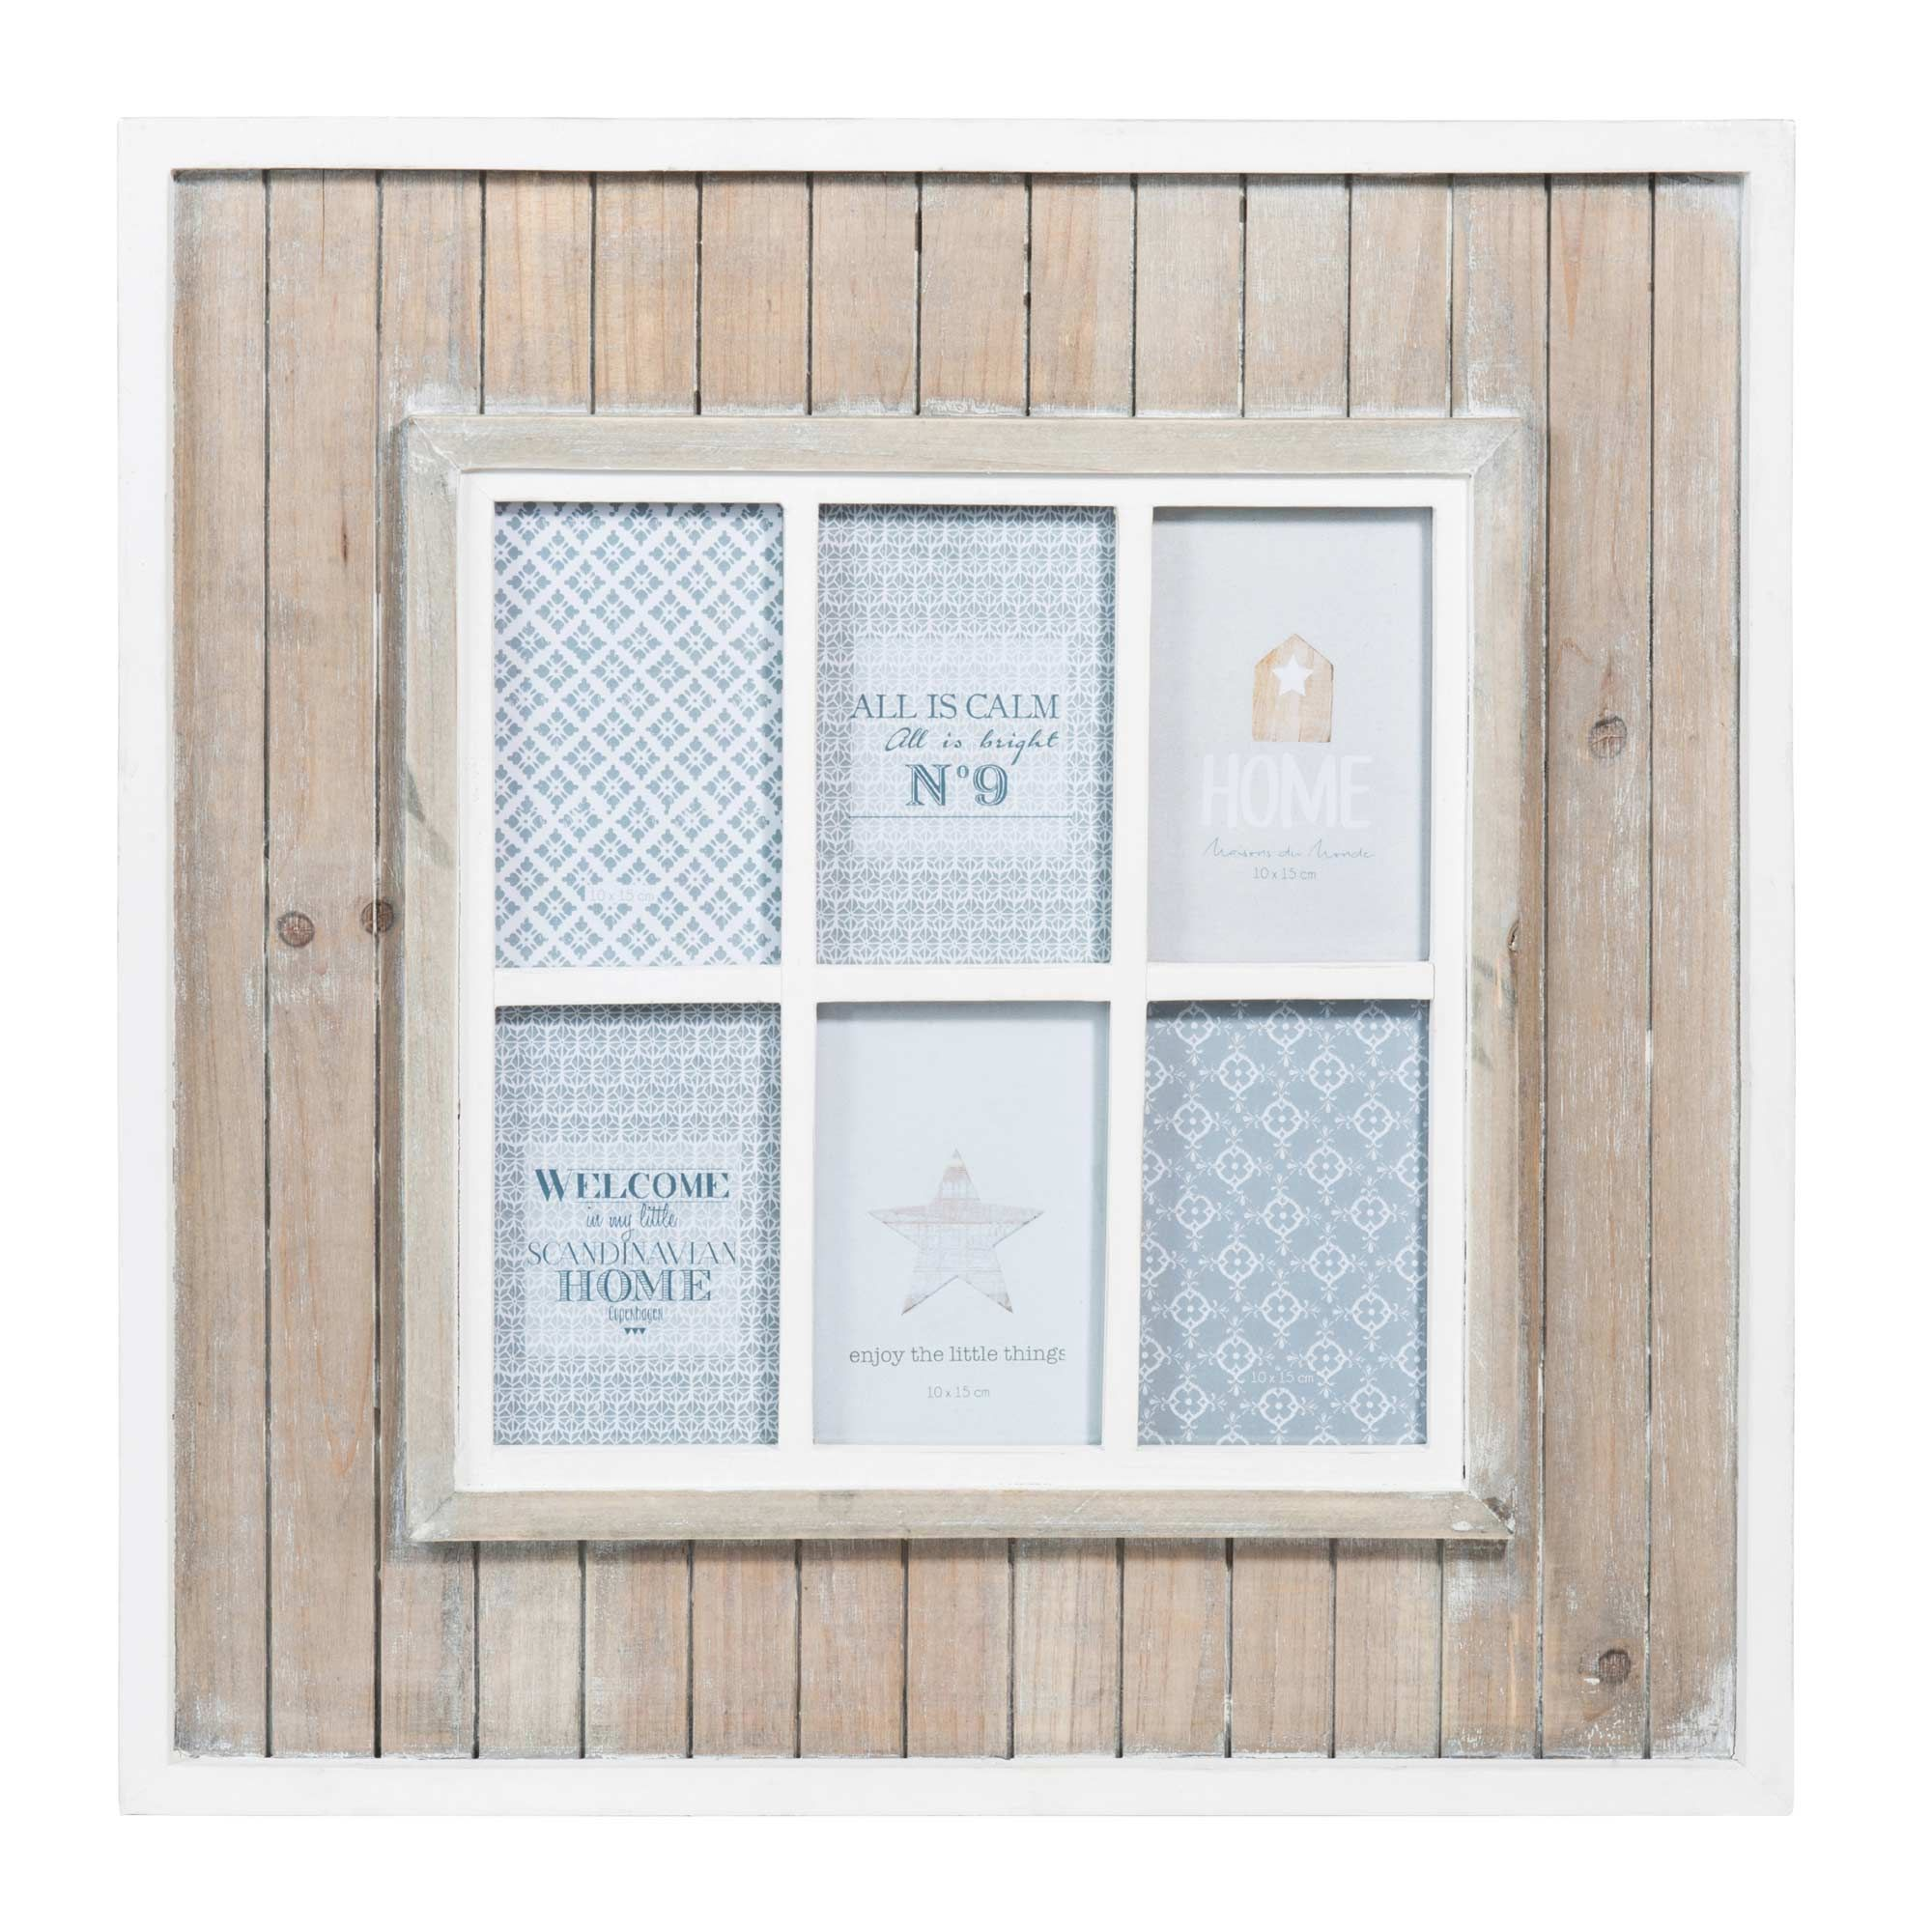 Marco de fotos ventana de madera 50 x 50 cm SNOW | wish list | Pinterest